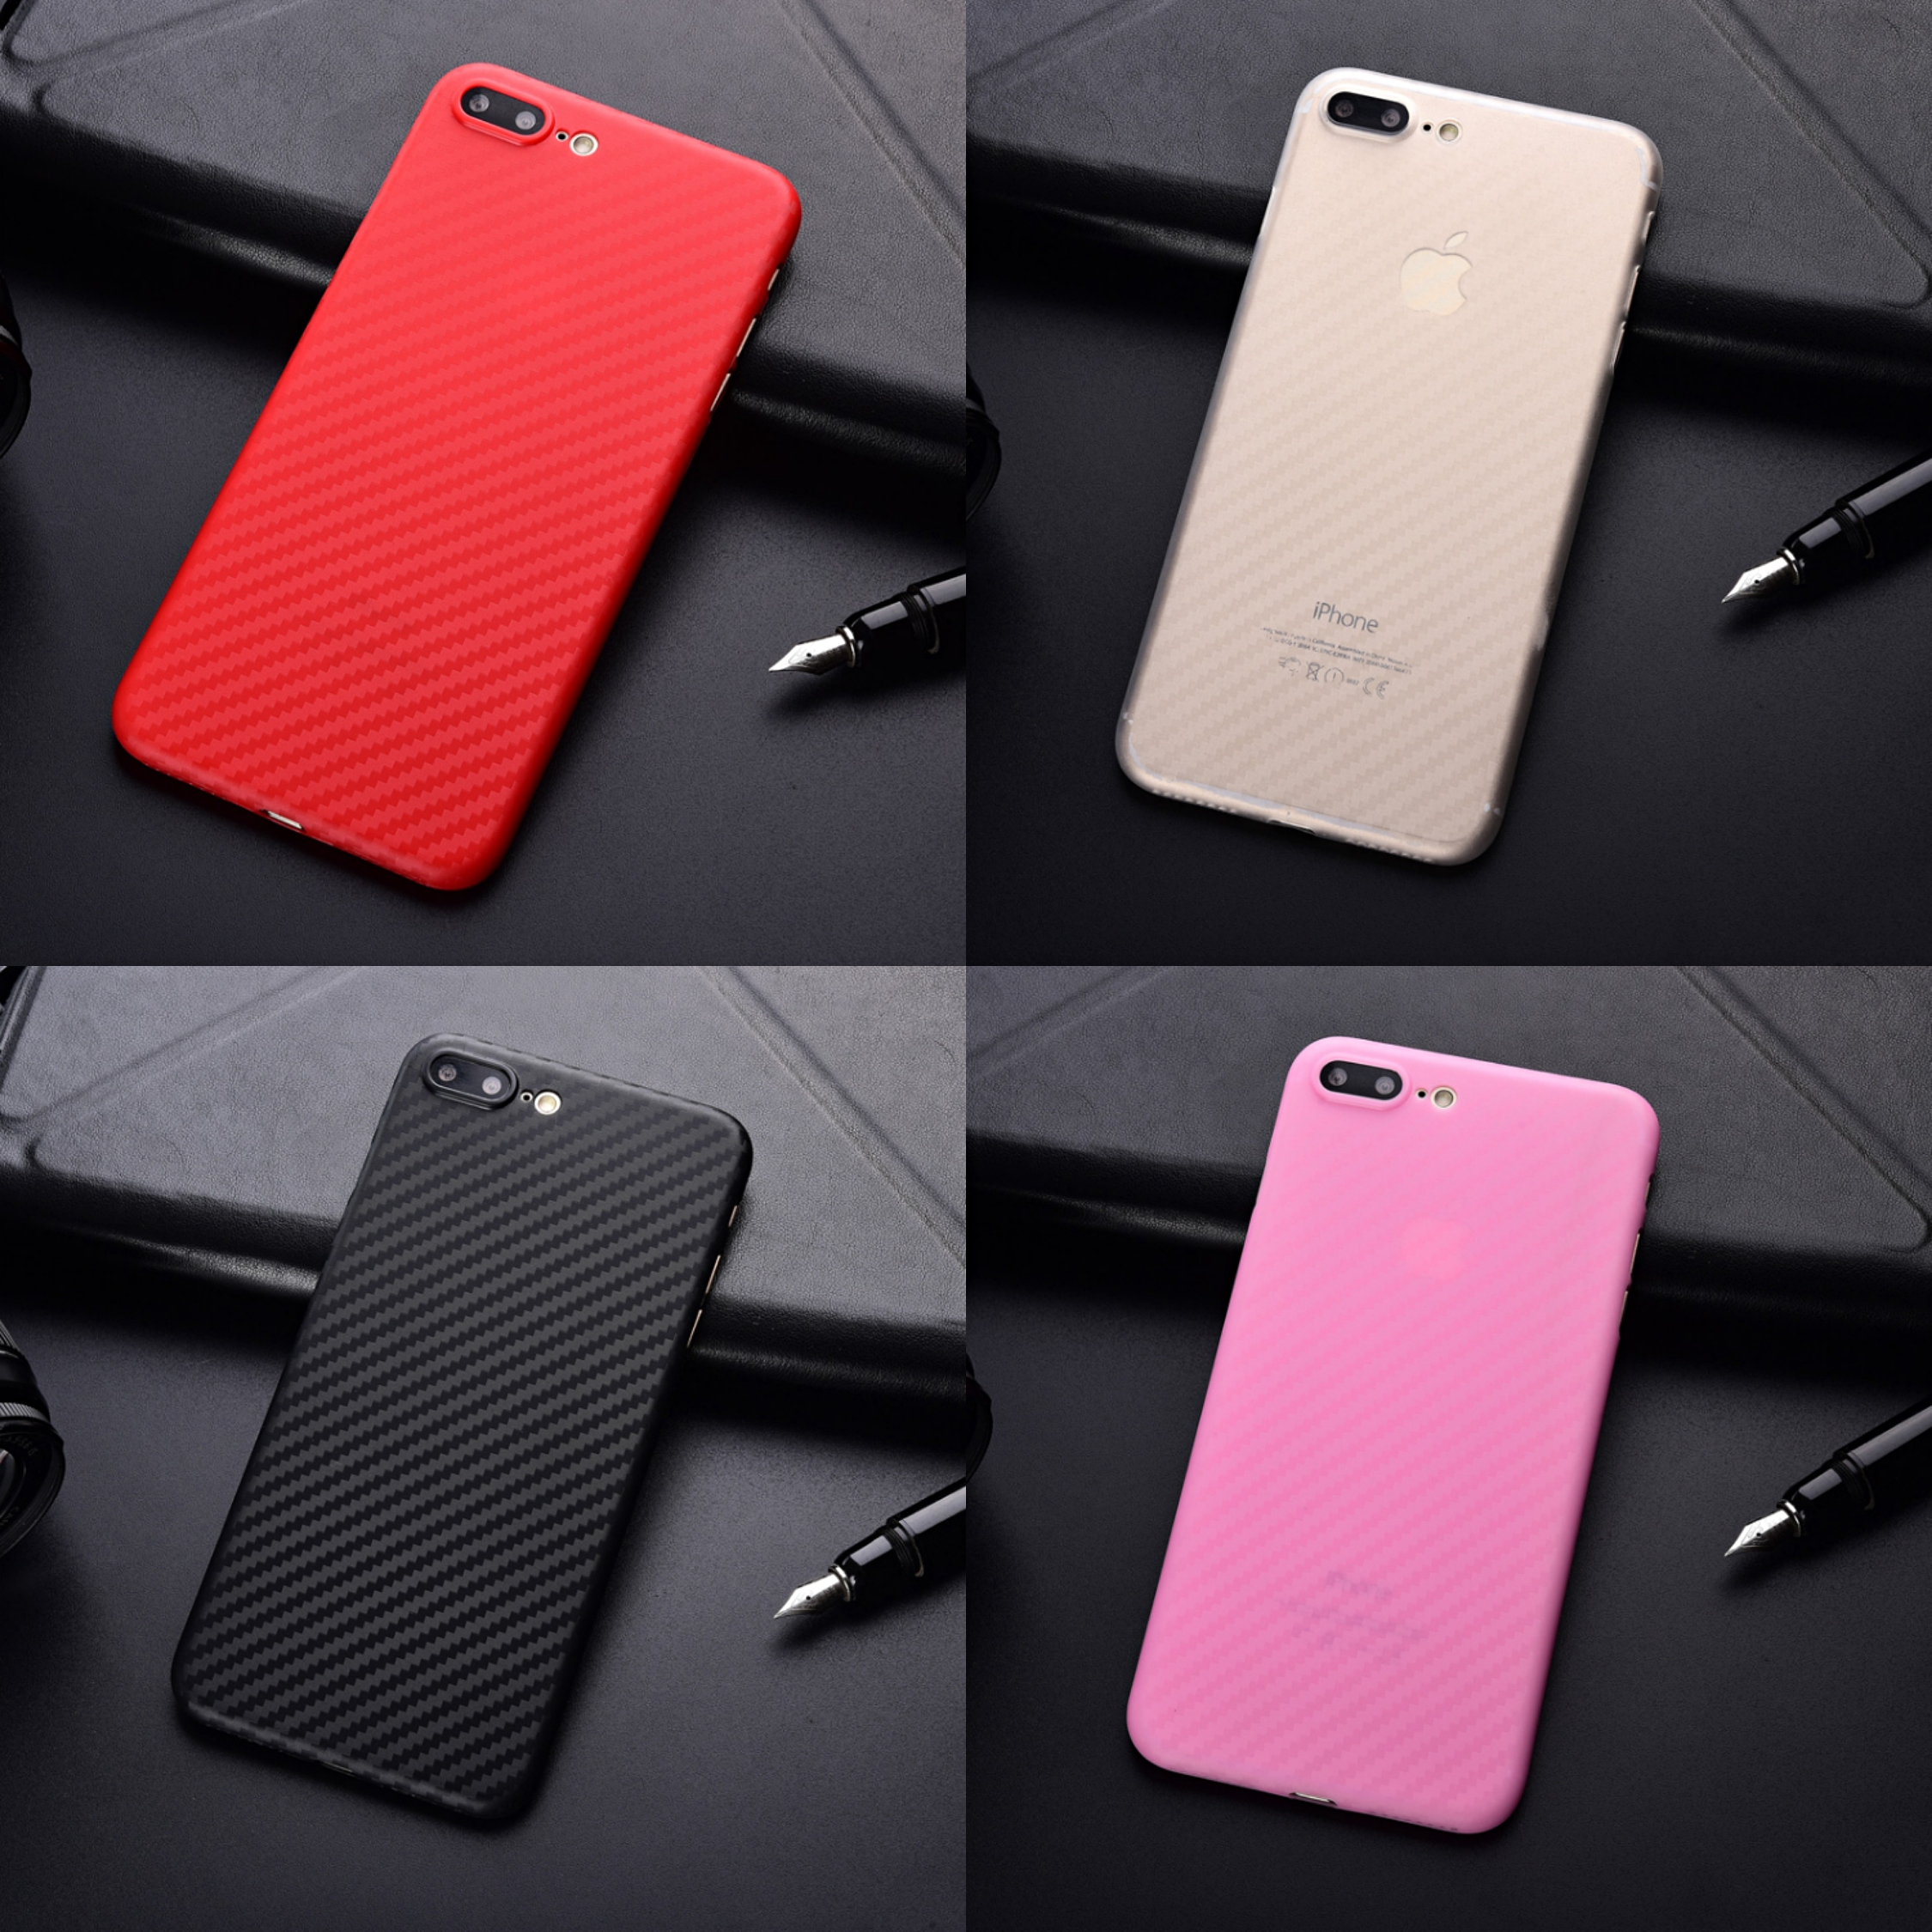 Luxury Ultra Thin Soft Carbon Fiber Phone <font><b>Case</b></font> For <font><b>iPhone</b></font> X XR XS Max 8 7 <font><b>6</b></font> 6S <font><b>Plus</b></font> Black White Blue <font><b>Red</b></font> Pink Bumper Cover Coque image